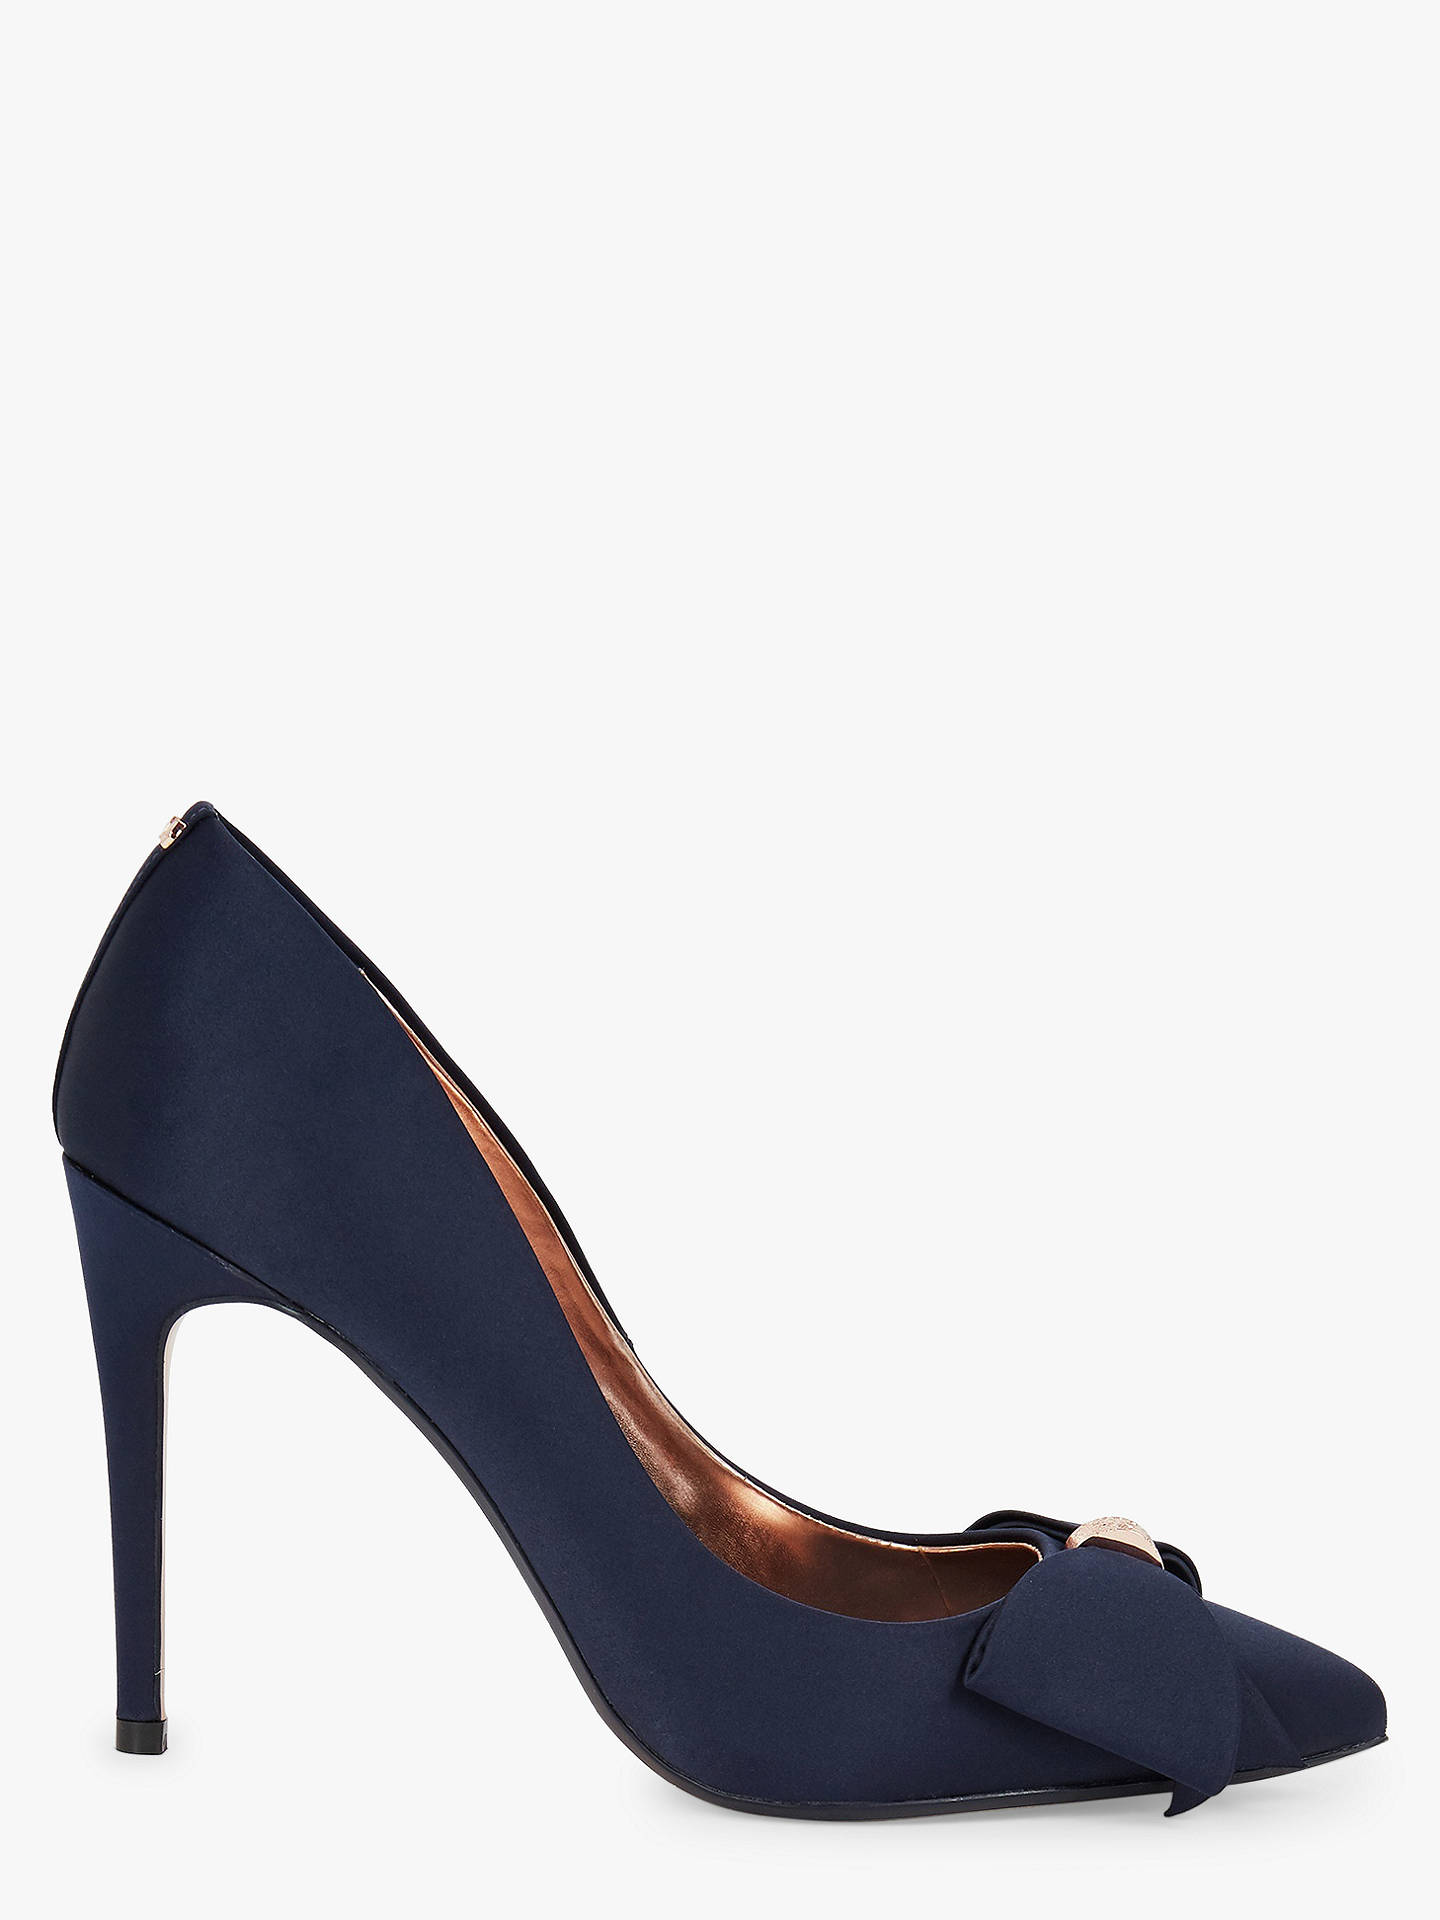 939ffd1aeb6 Buy Ted Baker Asellys Stiletto Heel Bow Court Shoes, Navy, 3 Online at  johnlewis ...